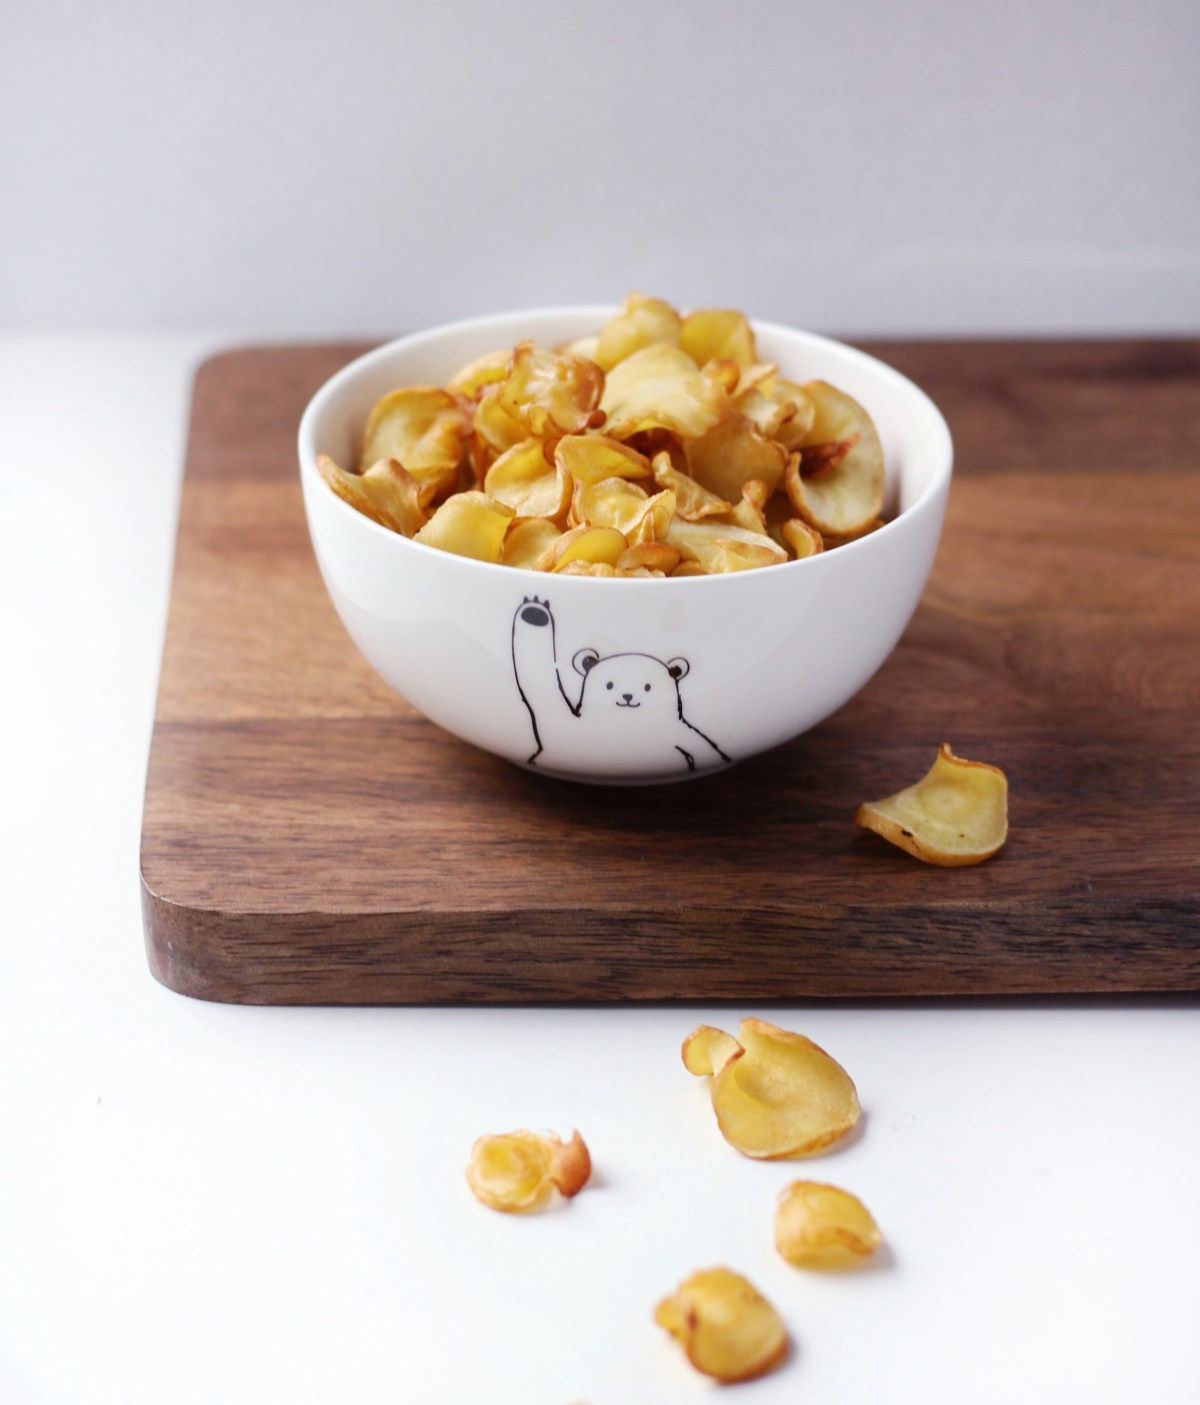 Baked Parsnip Chips with Olive oil and Salt